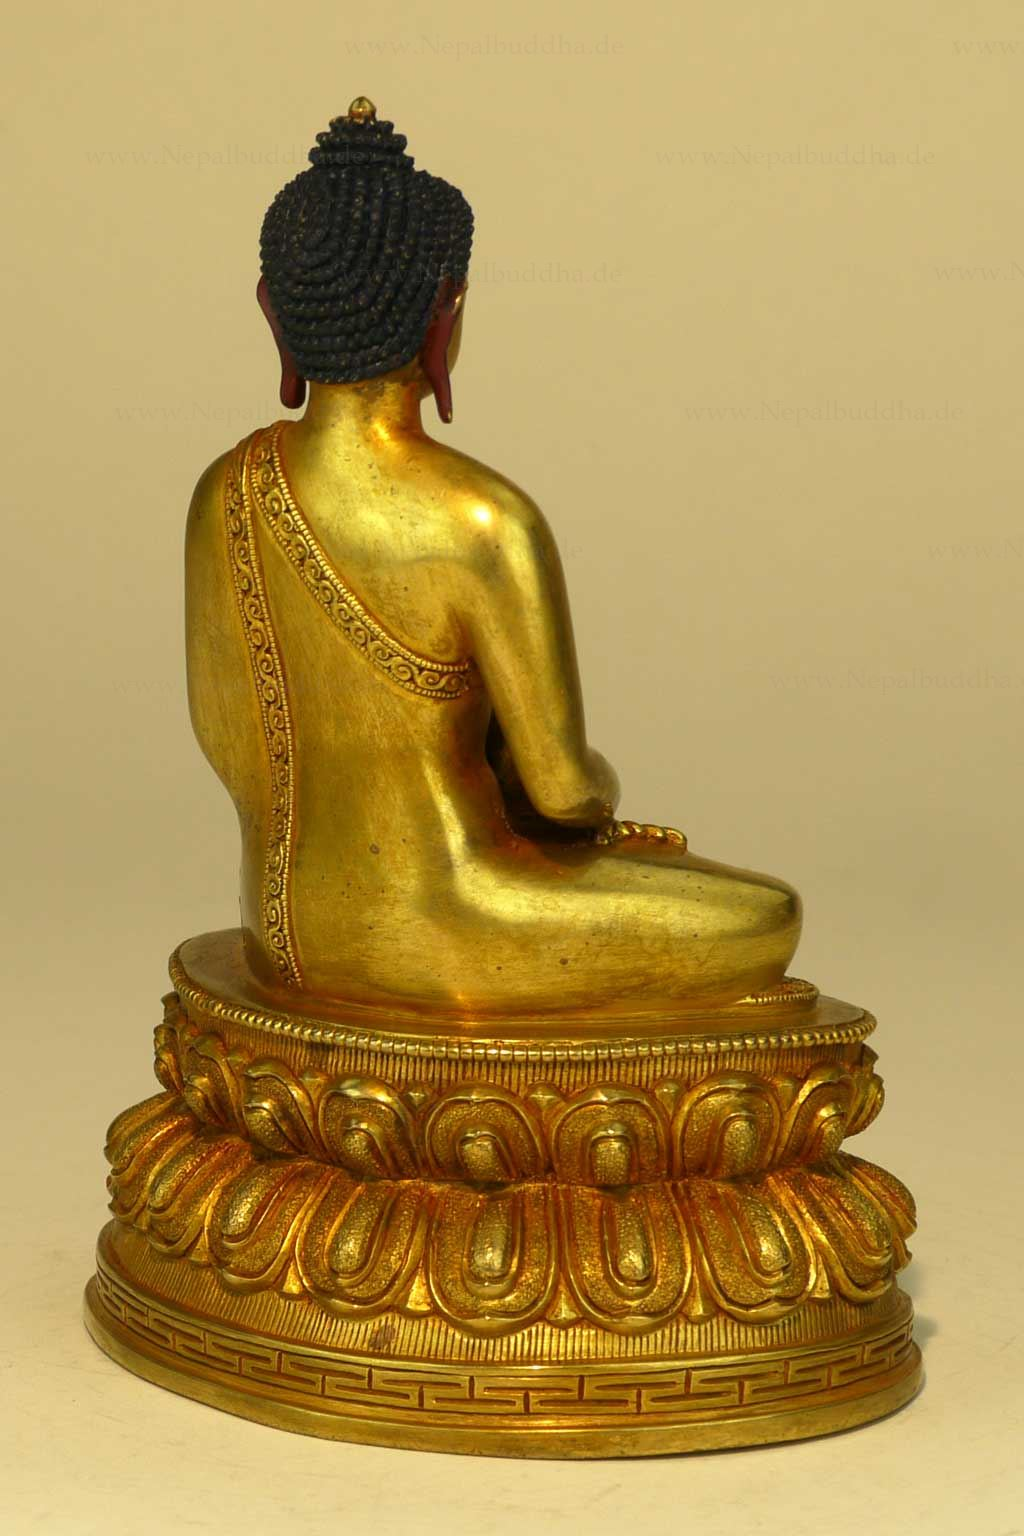 statue buddha amitabha buddhism lotus nepal figur statur unikat figur ebay. Black Bedroom Furniture Sets. Home Design Ideas